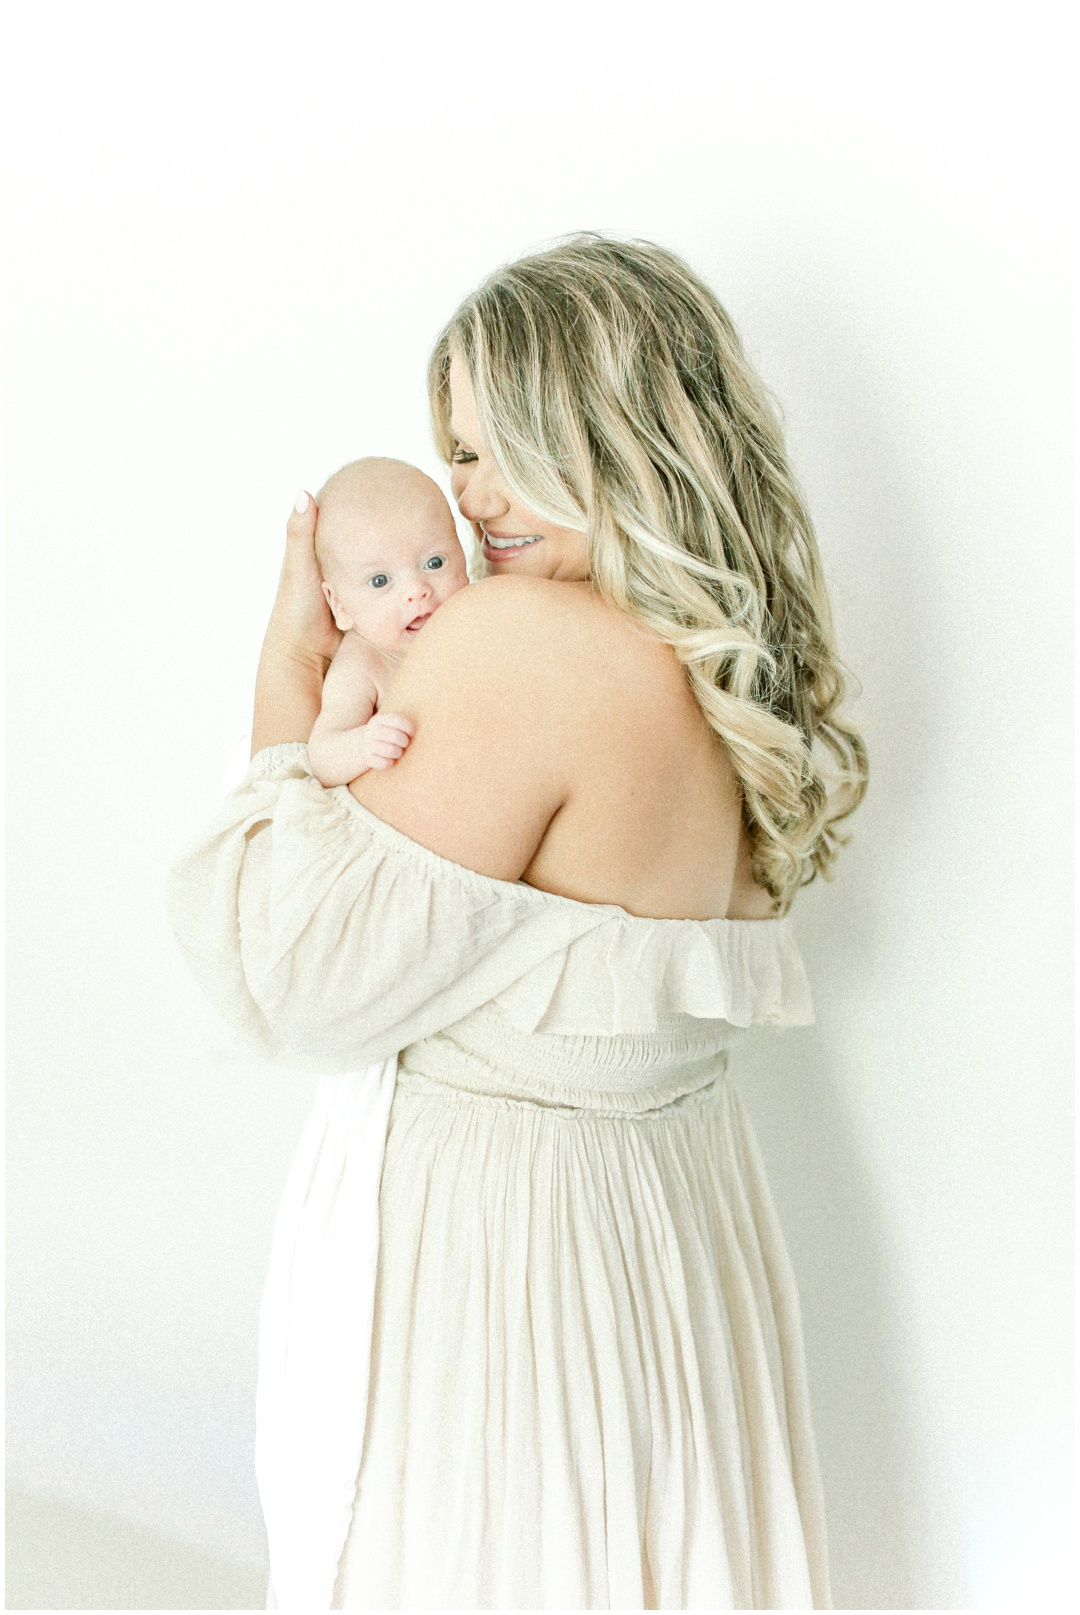 Newport_Beach_Newborn_Light_Airy_Natural_Photographer_Newport_Beach_In-Home_Photographer_Orange_County_Family_Photographer_Cori_Kleckner_Photography_Huntington_Beach_Photographer_Family_OC_Newborn_Meghan_Sullivan_Newborn_Family_Greer_Sullivan_3252.jpg